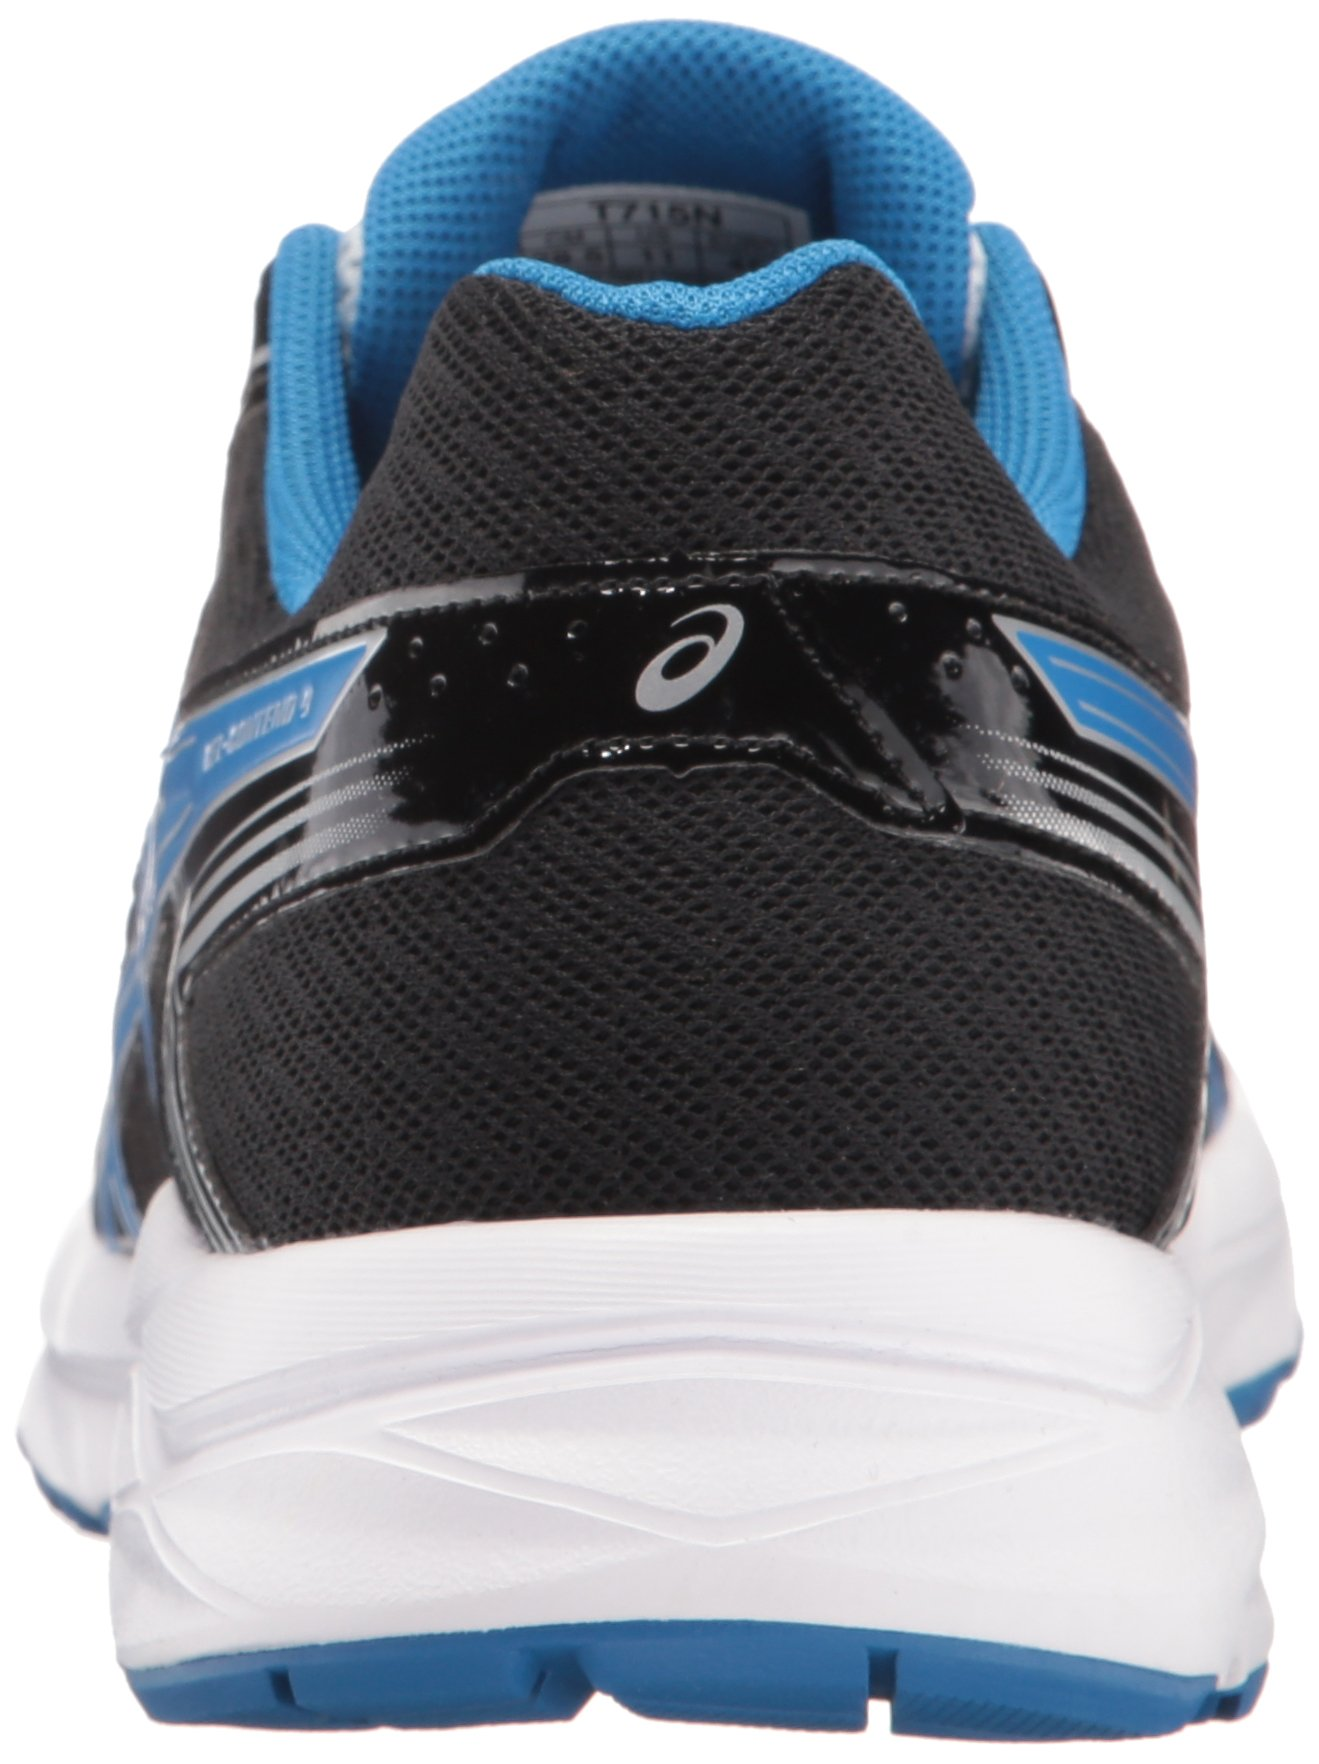 ASICS Men's Gel-Contend 4 Running Shoe, Silver/Classic Blue/Black, 7.5 M US by ASICS (Image #2)